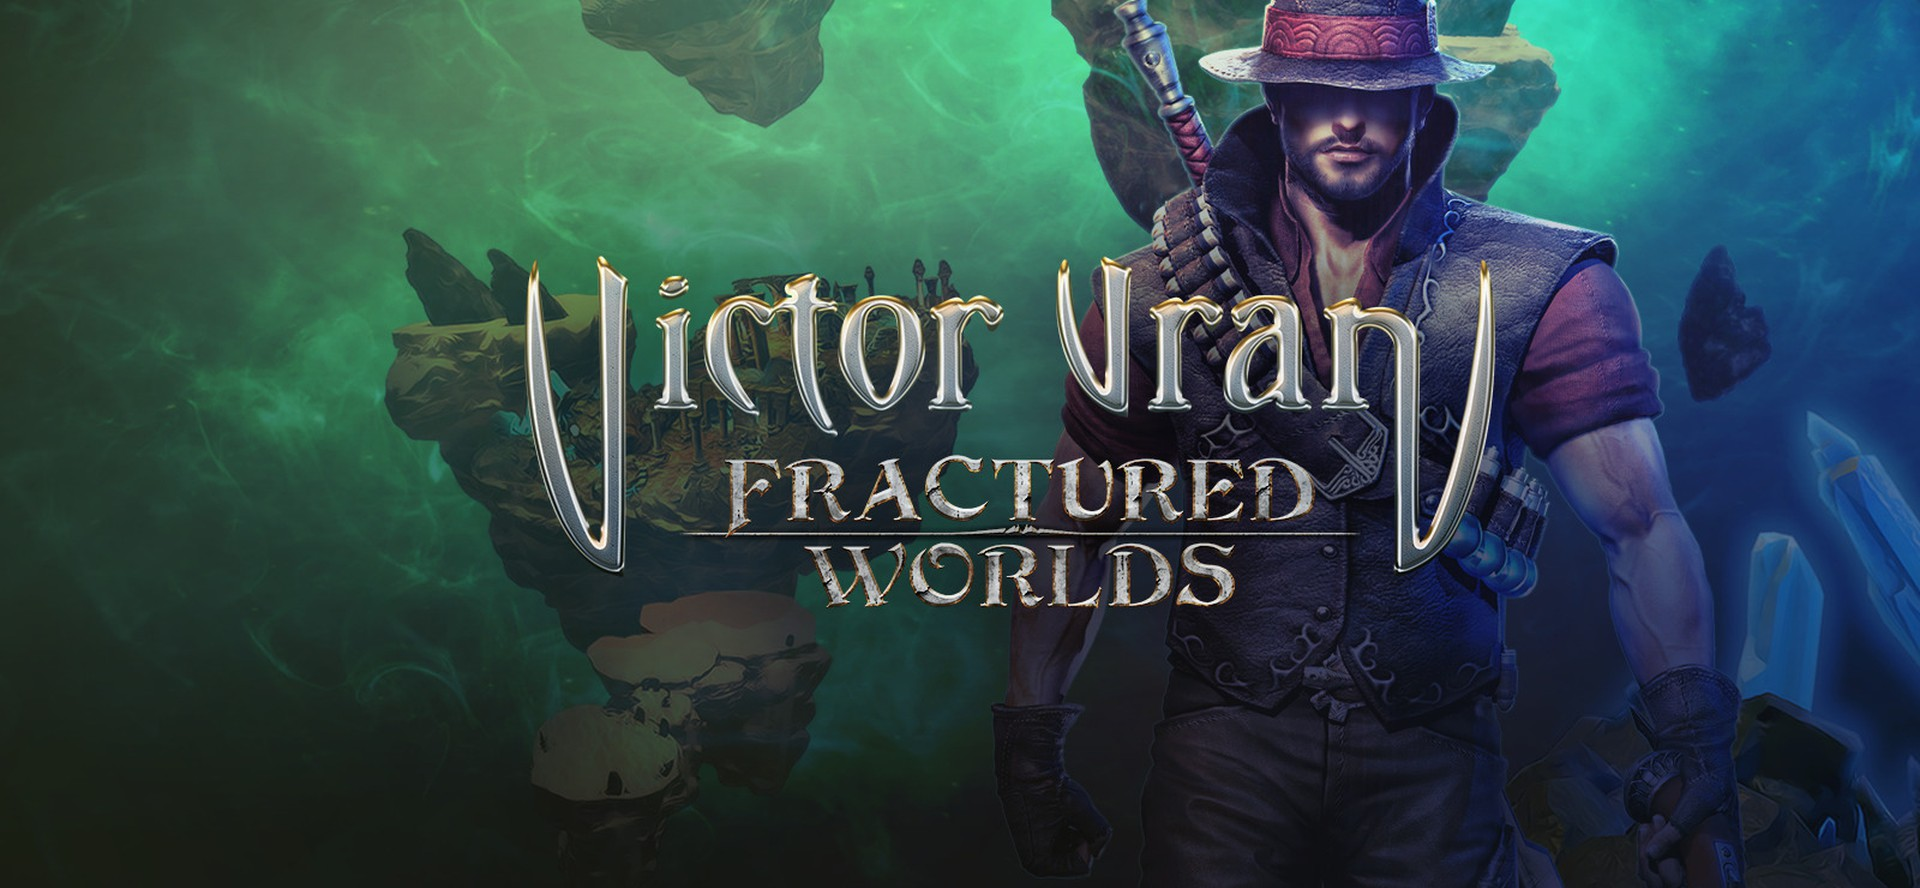 Victor Vran: Fractured Worlds Video